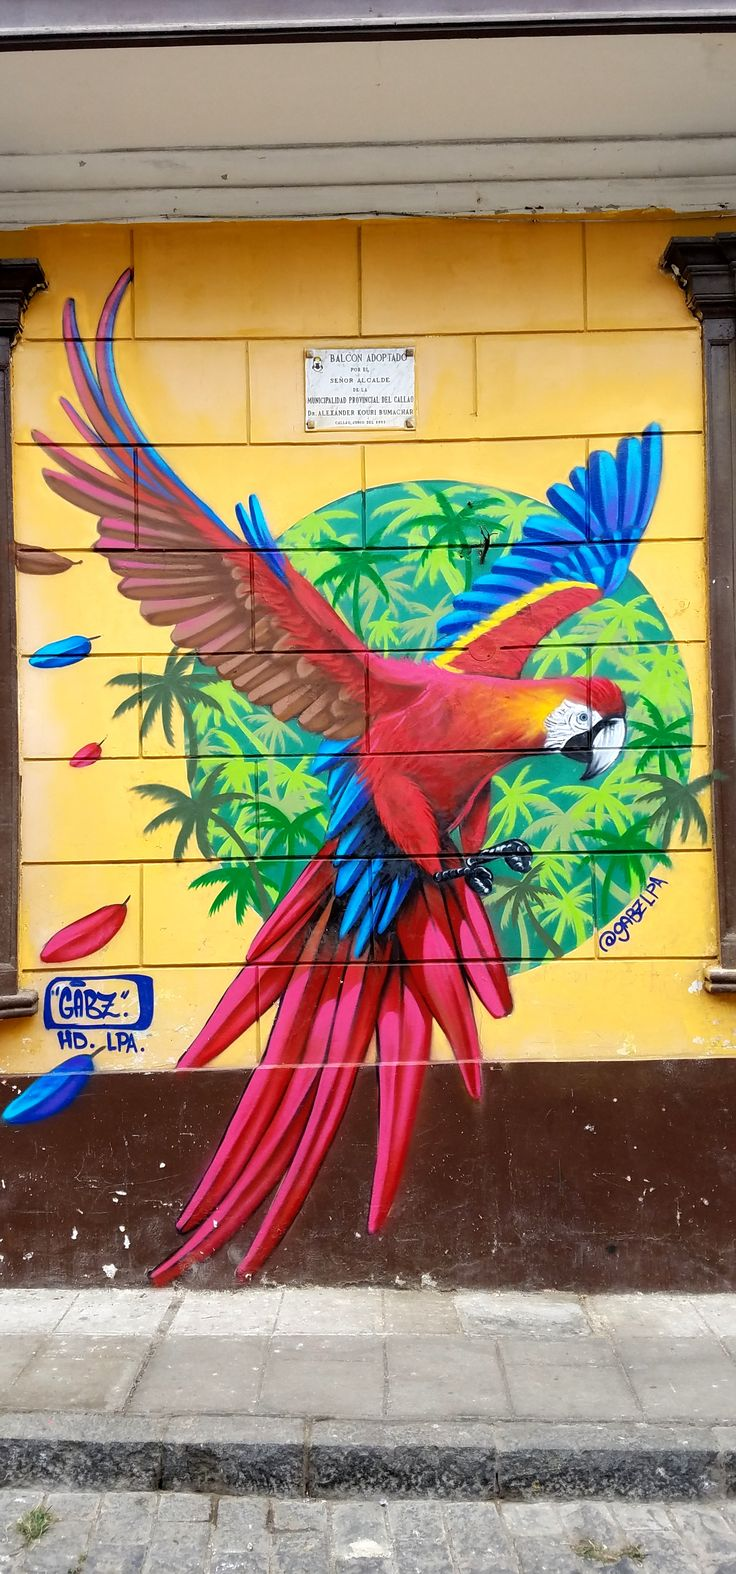 Callao, Peru (Callao Monumental) - Street Art & Graffiti. Callao Monumental is an amazing project to revitalize the Municipality of Callao, Peru, where an artist colony is blossoming up in what was a very rough section. Original photography from R. Stowe